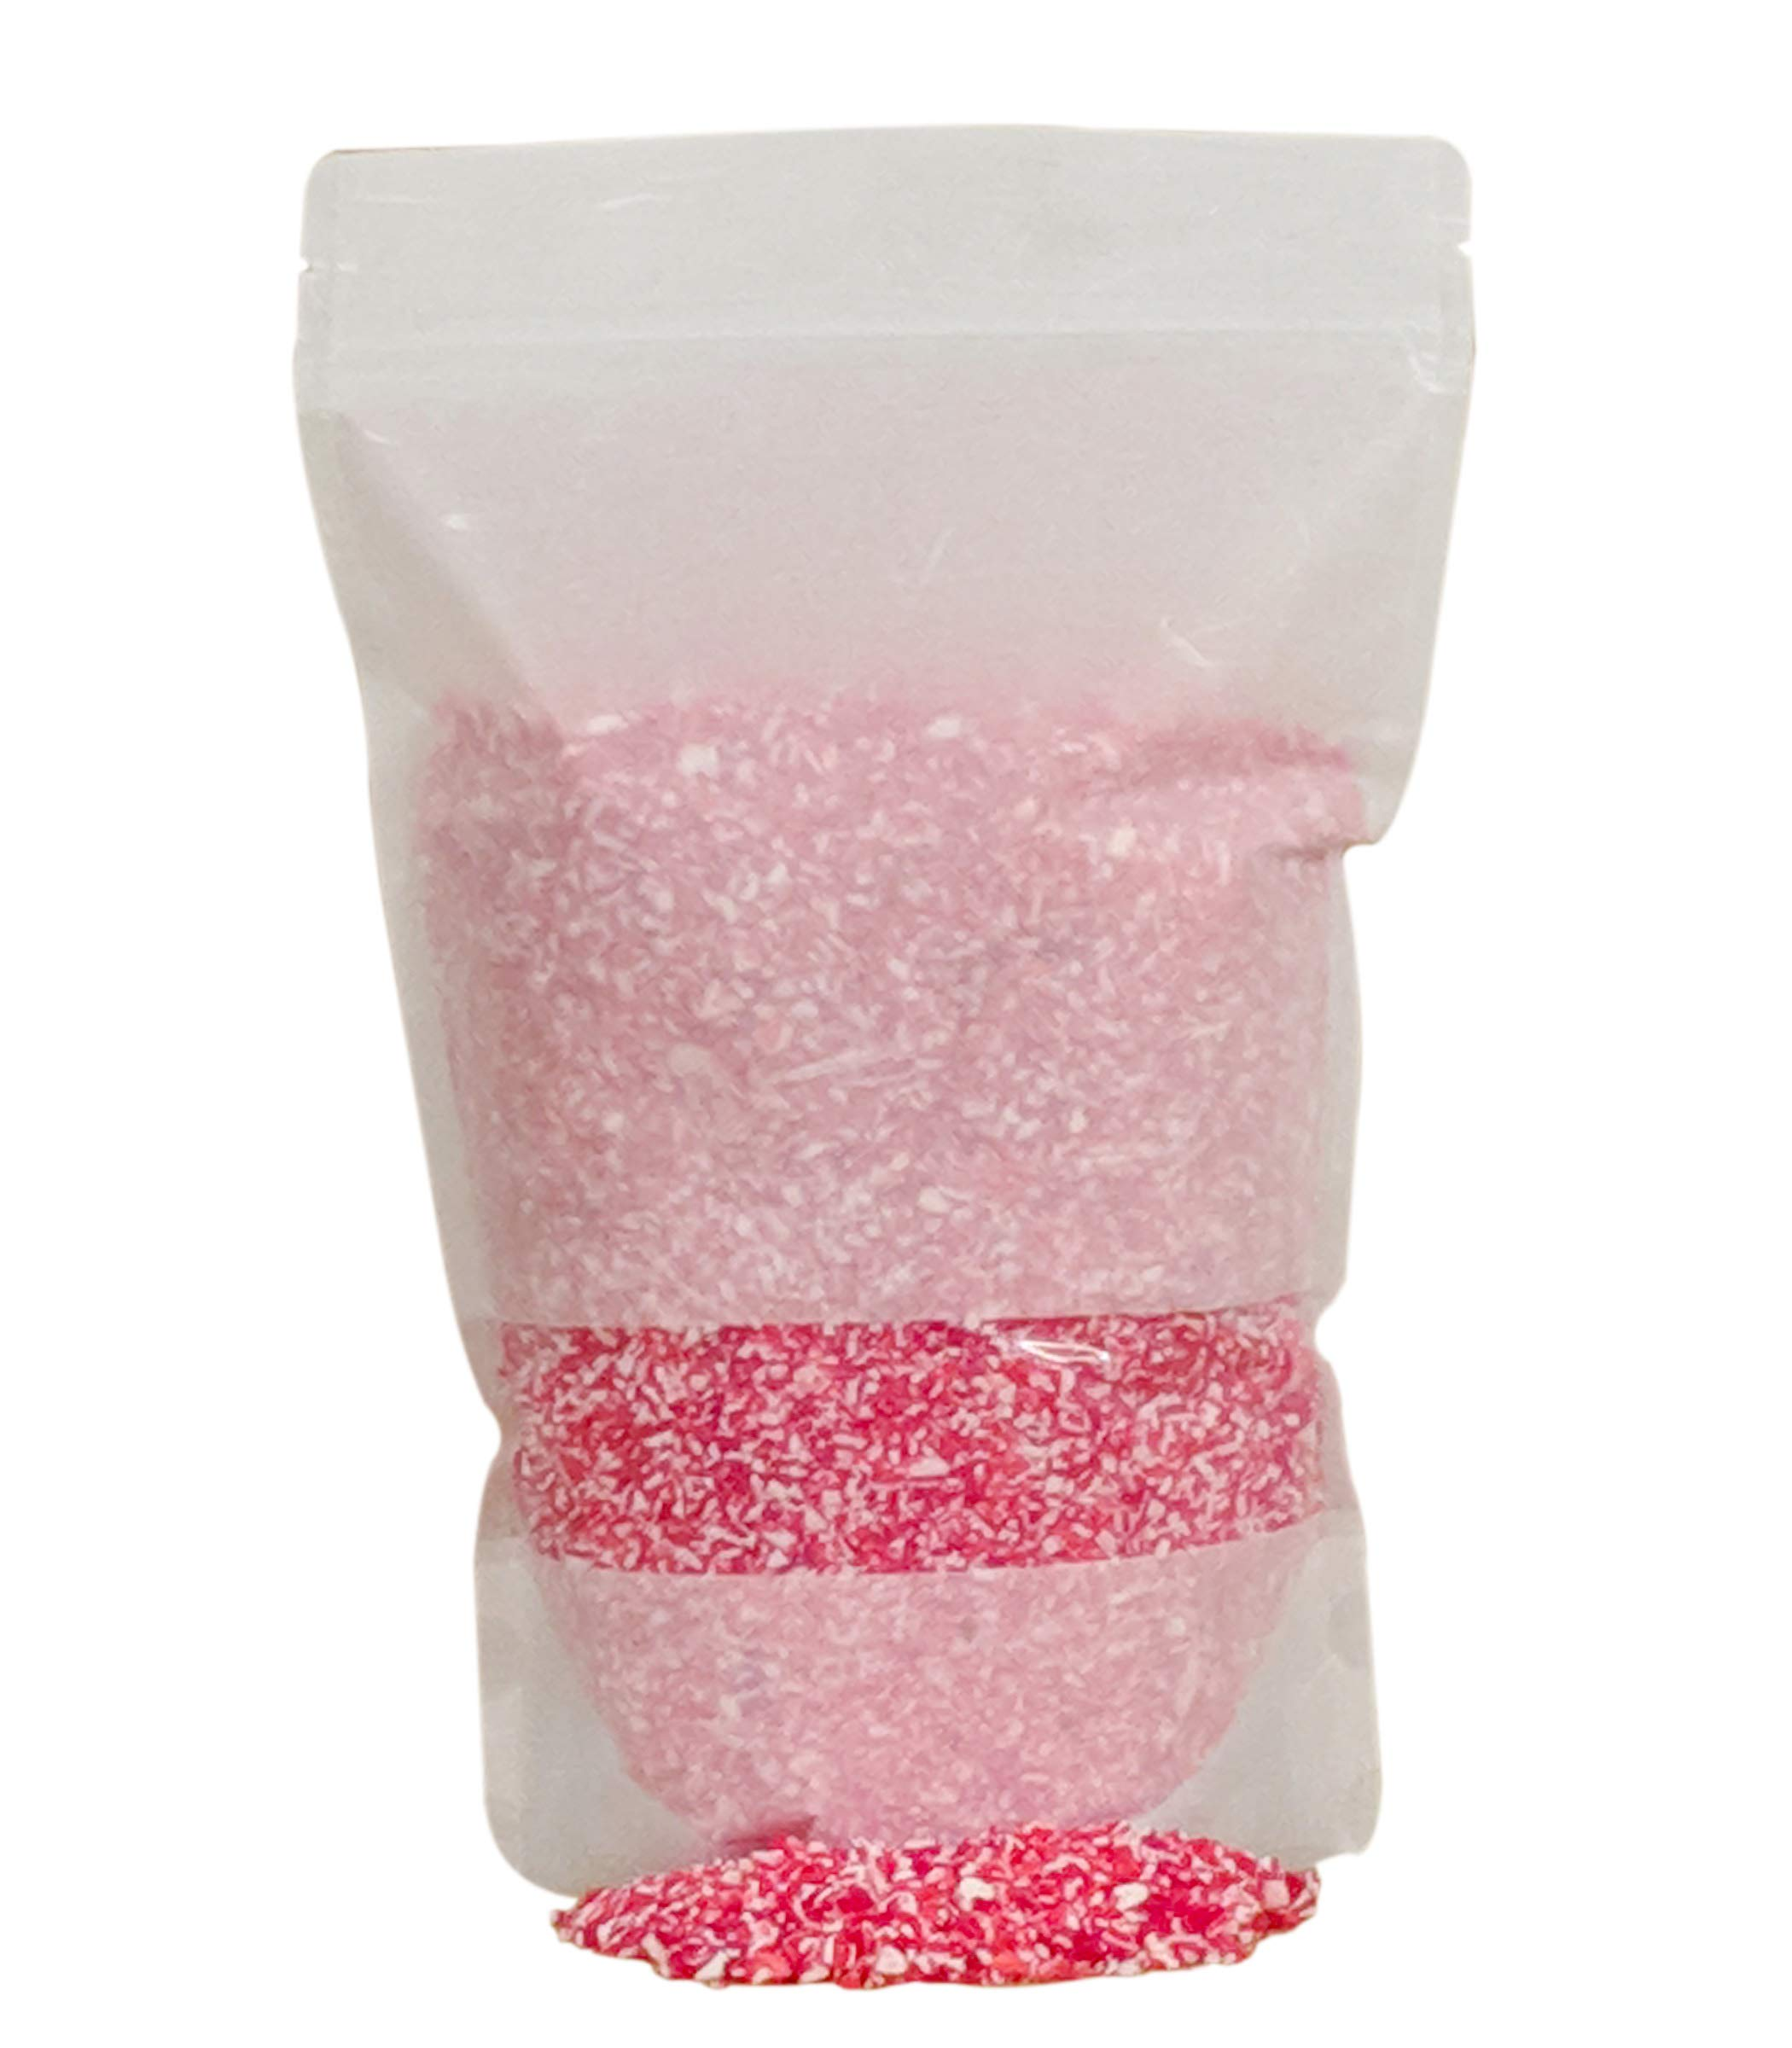 Festival Candy Cane Crunch - Crushed Peppermint Candy Topper Bits - Perfect Holiday Addition To Any Dessert Or Drink - Comes With Scoop And Recipe Card - Christmas Cookie Decorations, Candy Cane (3LB) by BRAND CASTLE